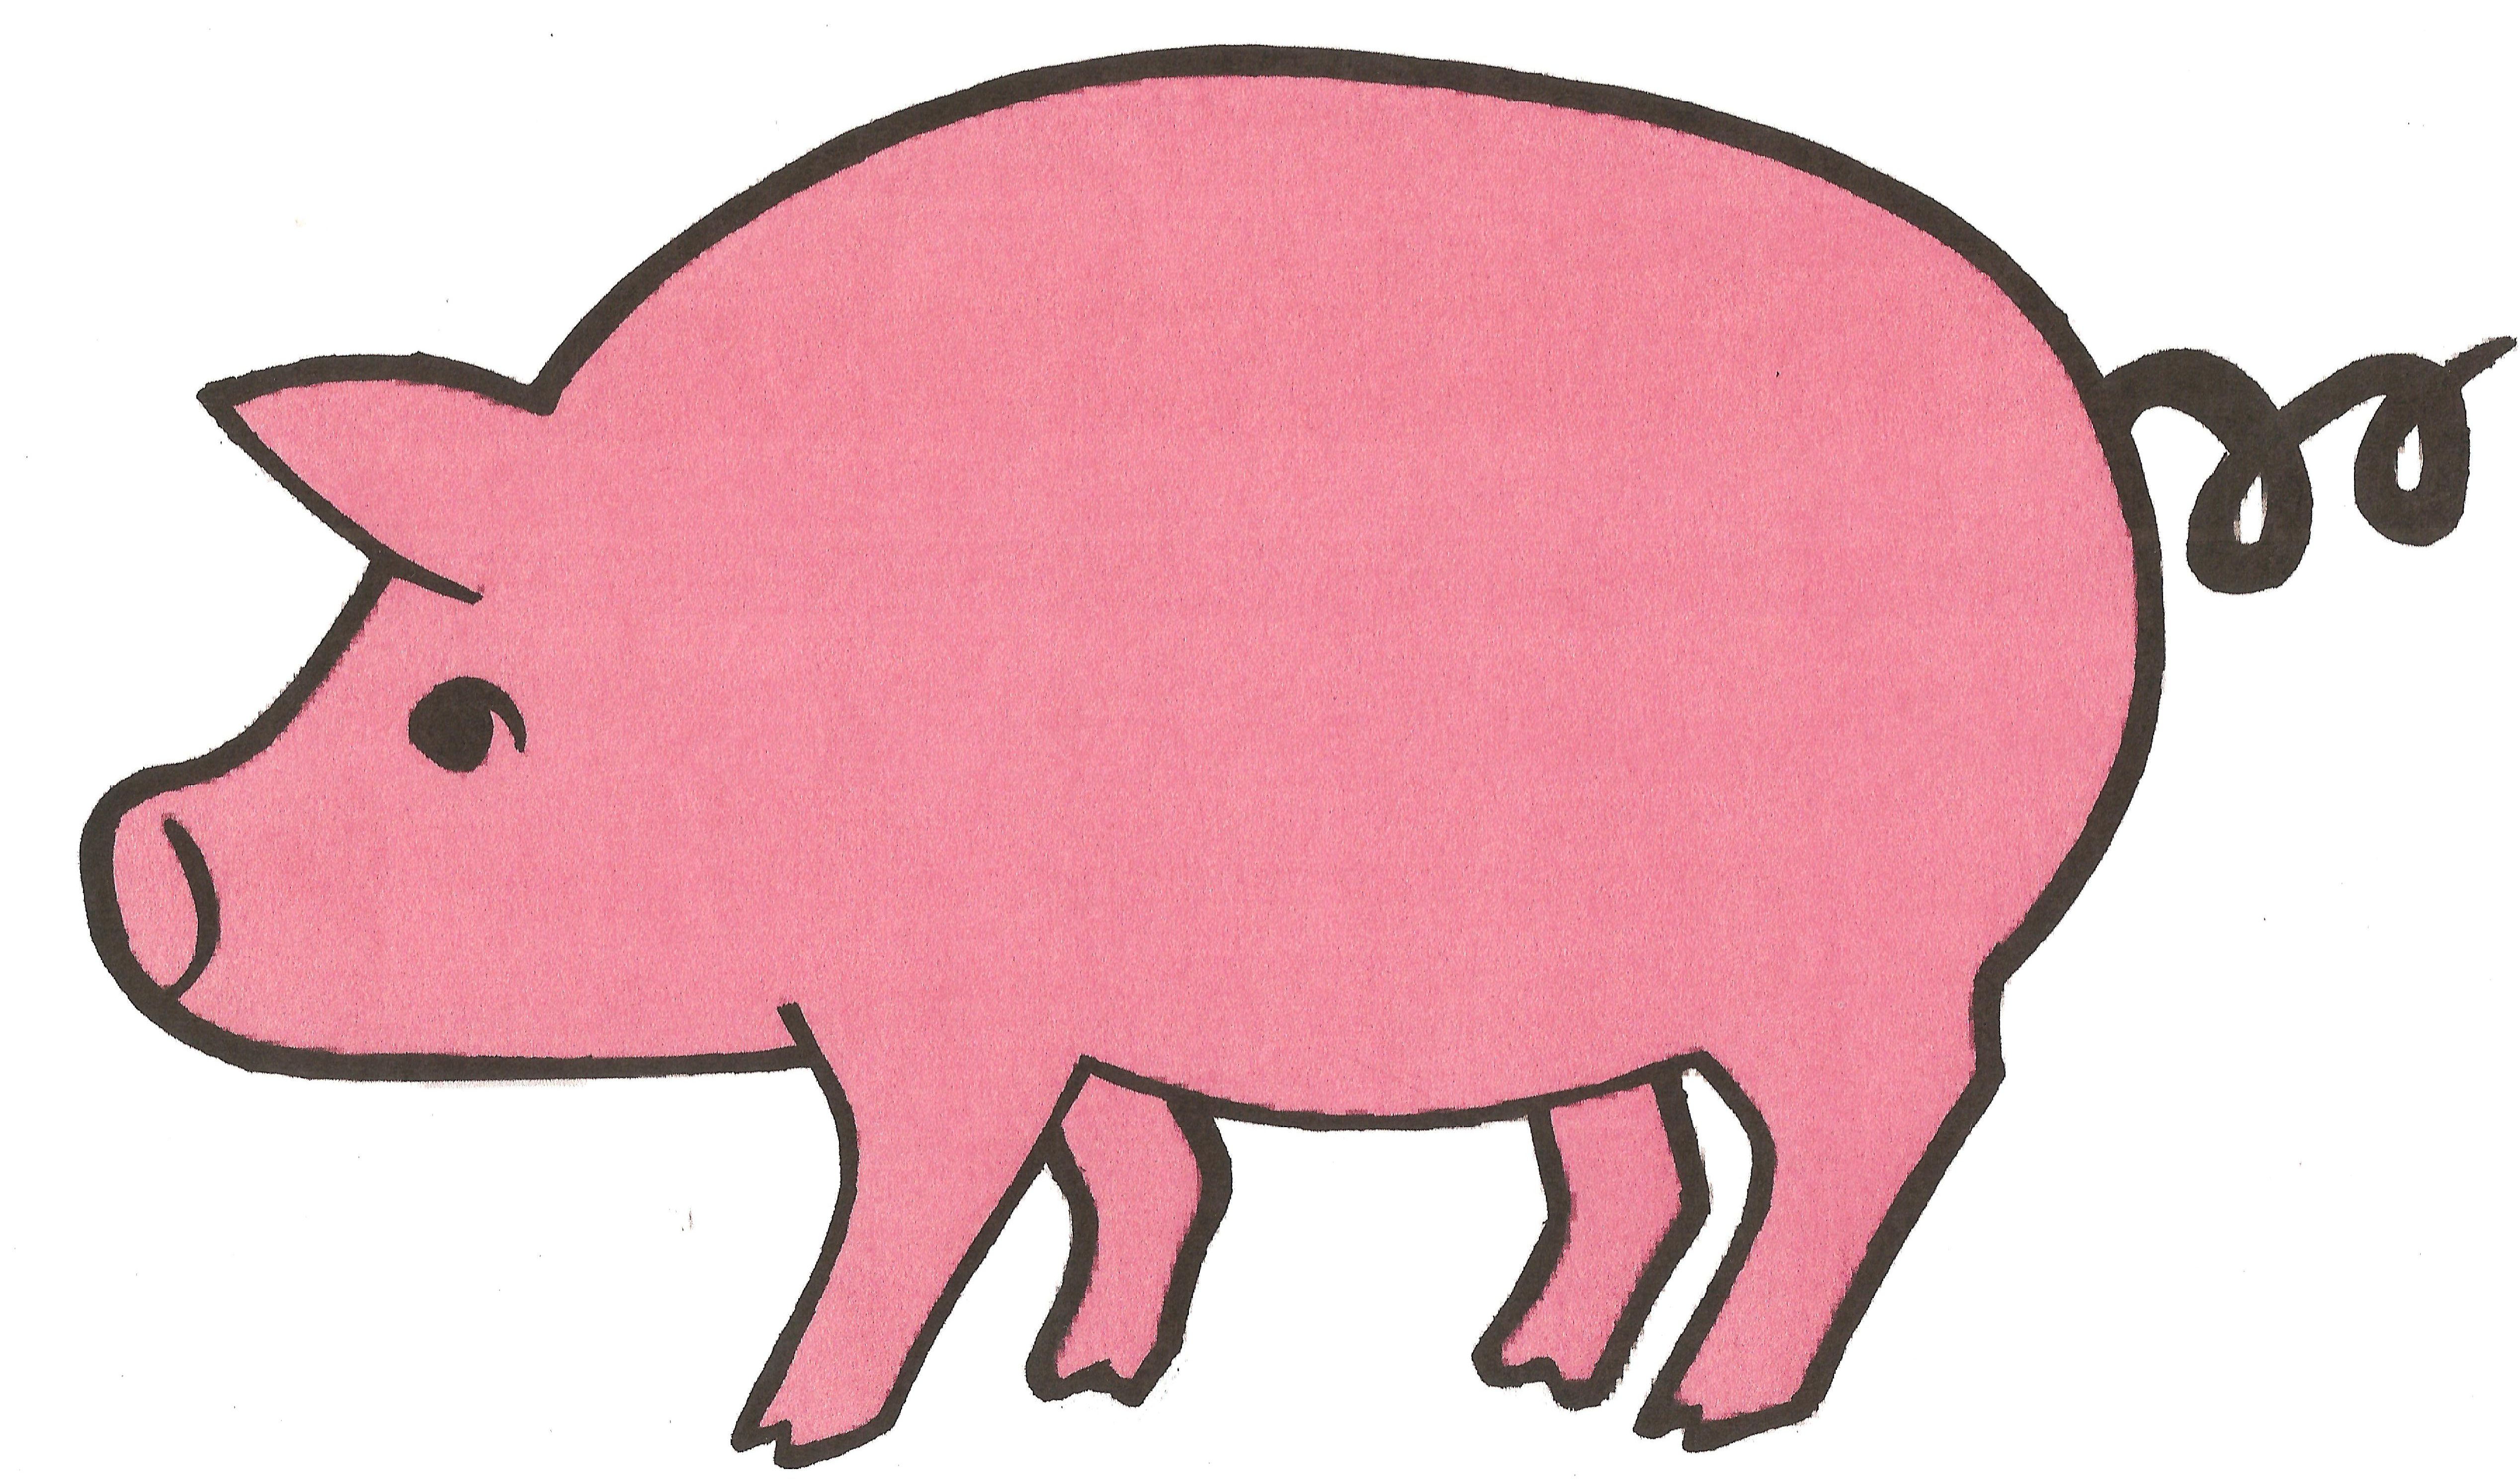 Pig head side view clipart banner black and white download Free Pink Pig Cliparts, Download Free Clip Art, Free Clip ... banner black and white download